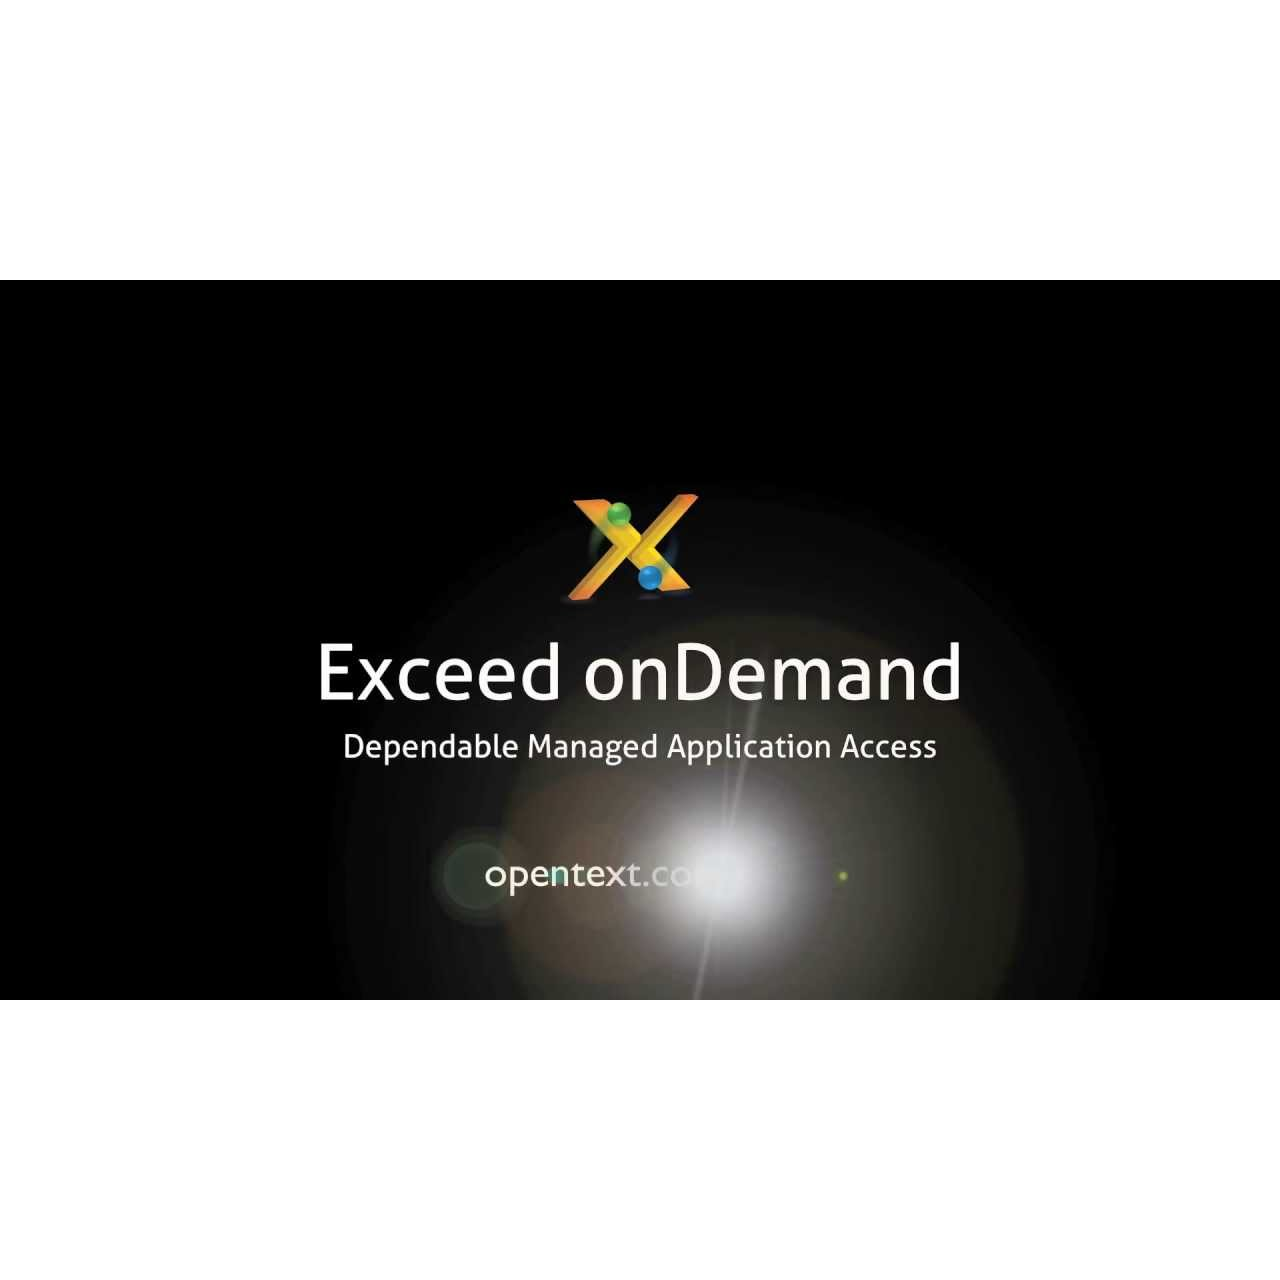 OpenText Exceed onDemand